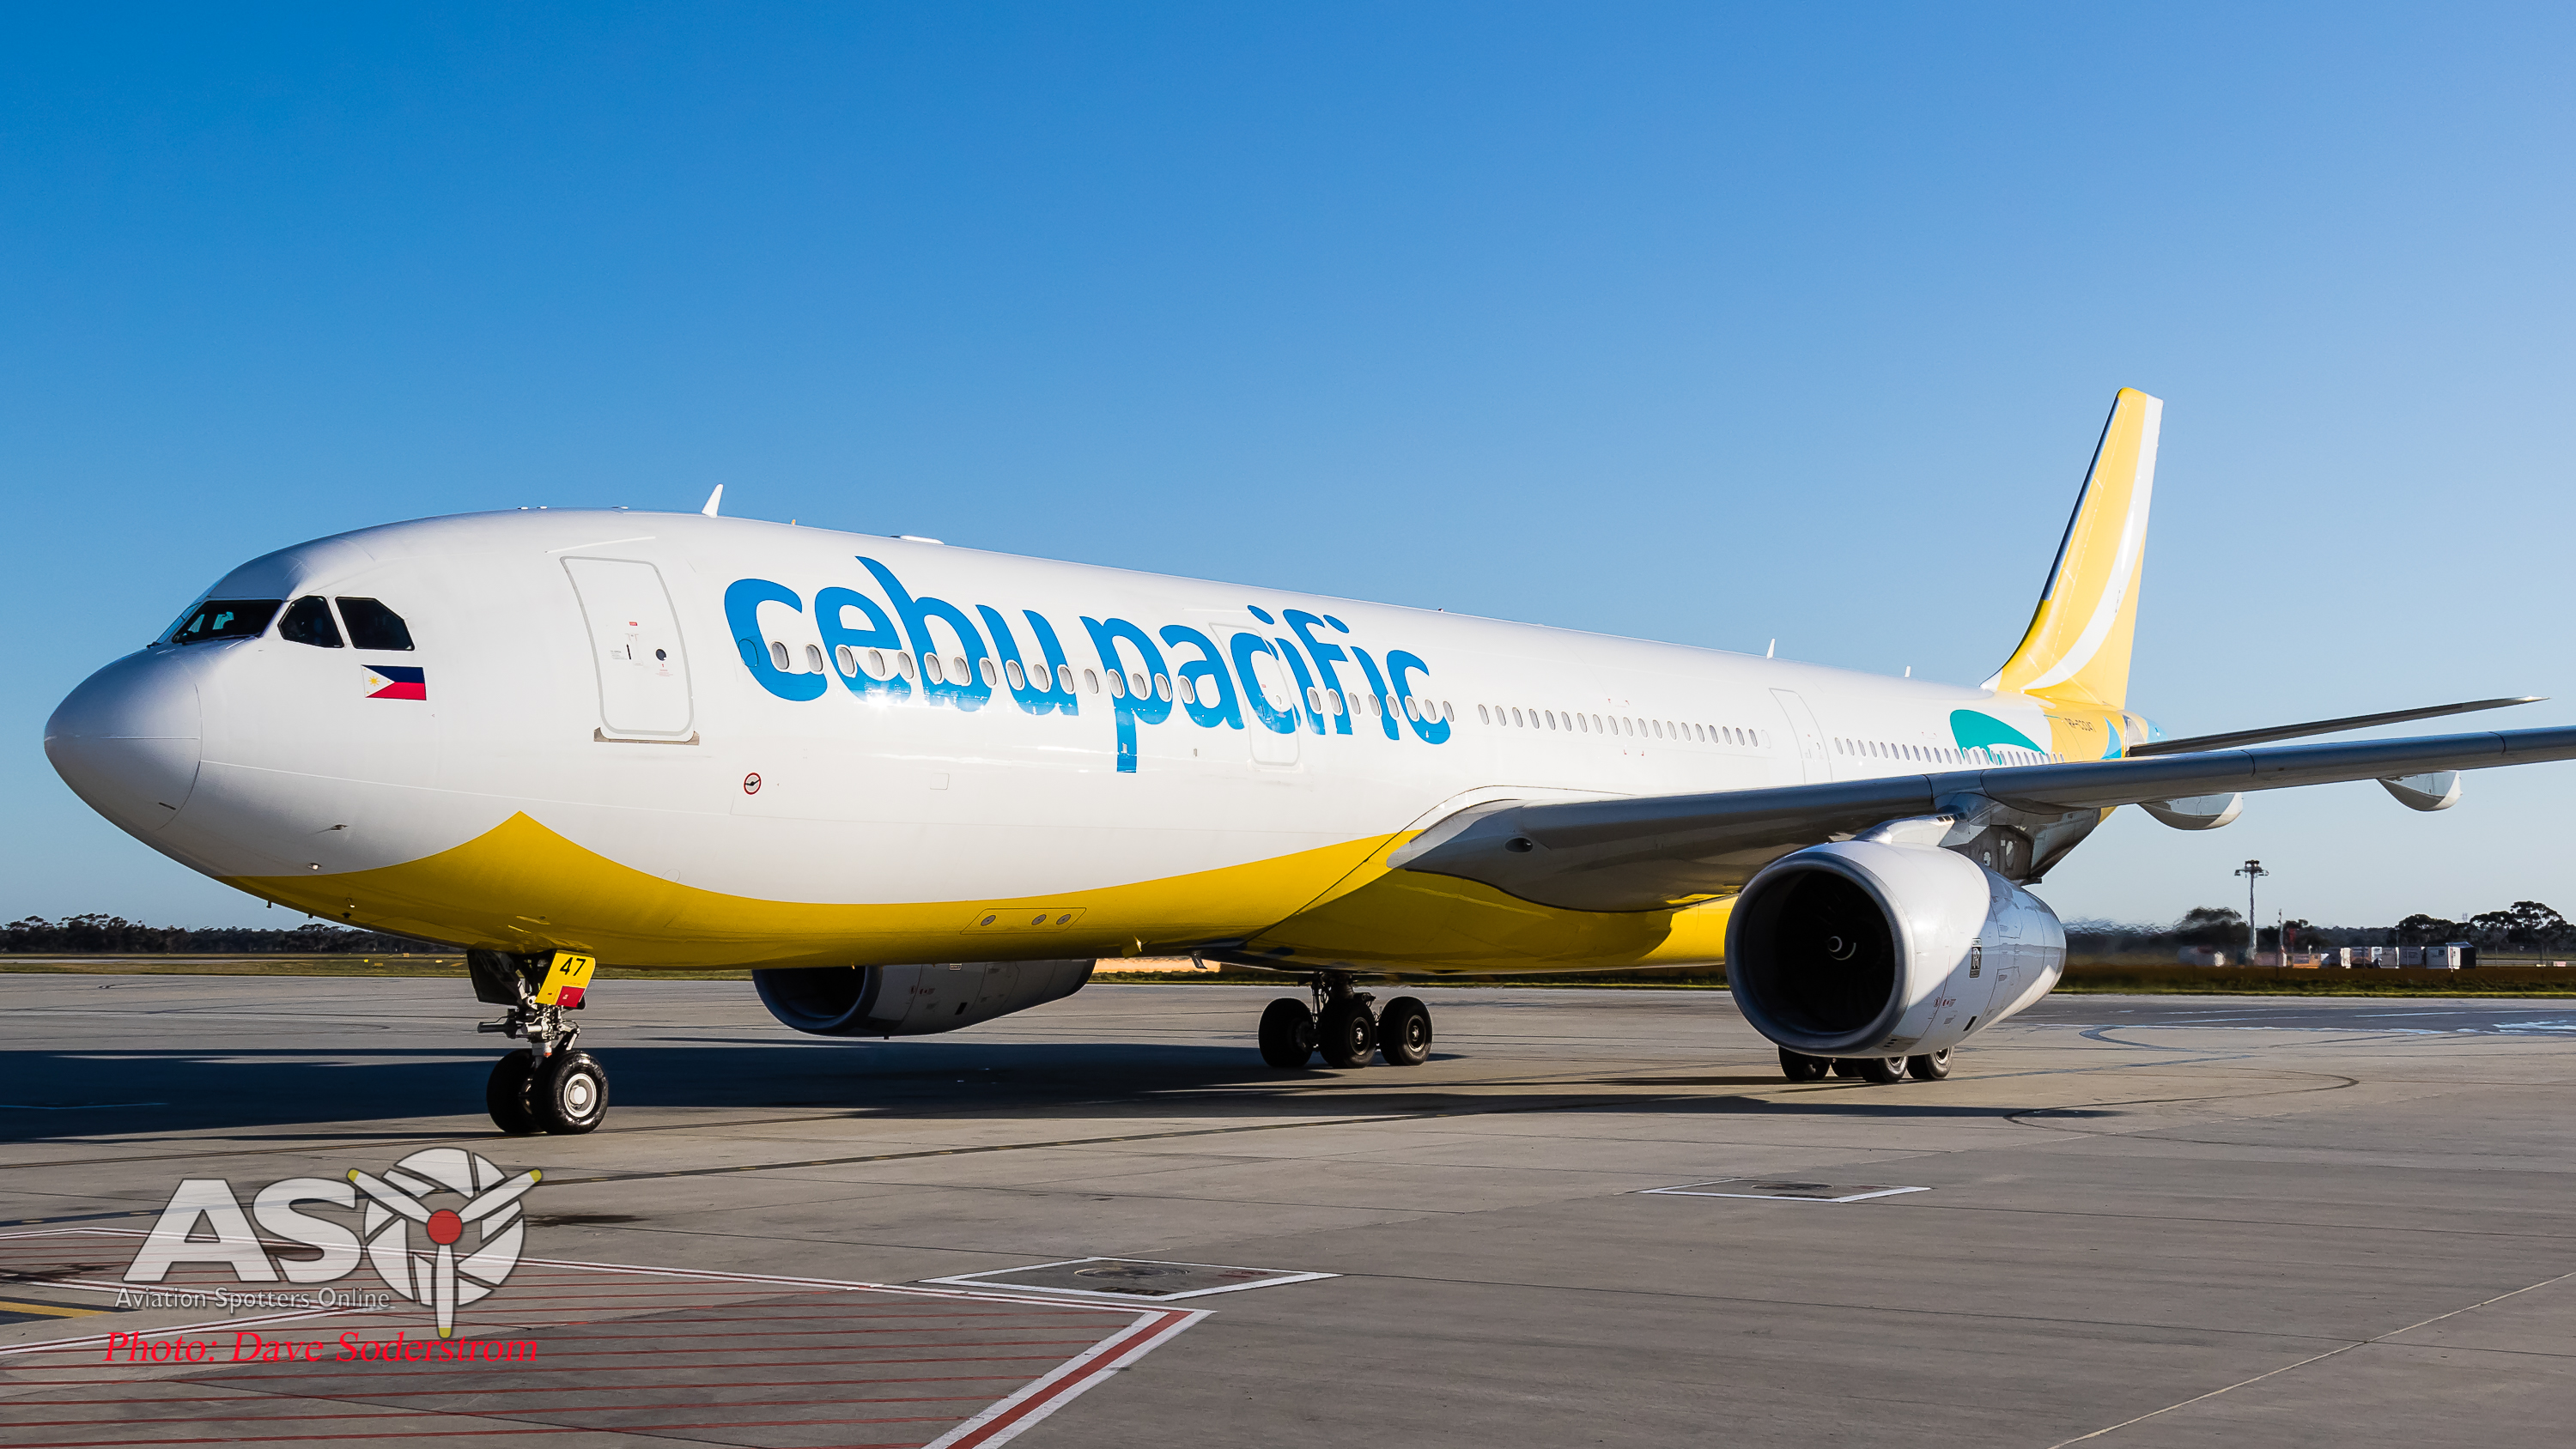 Maligayang pagdating sa Melbourne, Cebu Pacific Air touches down